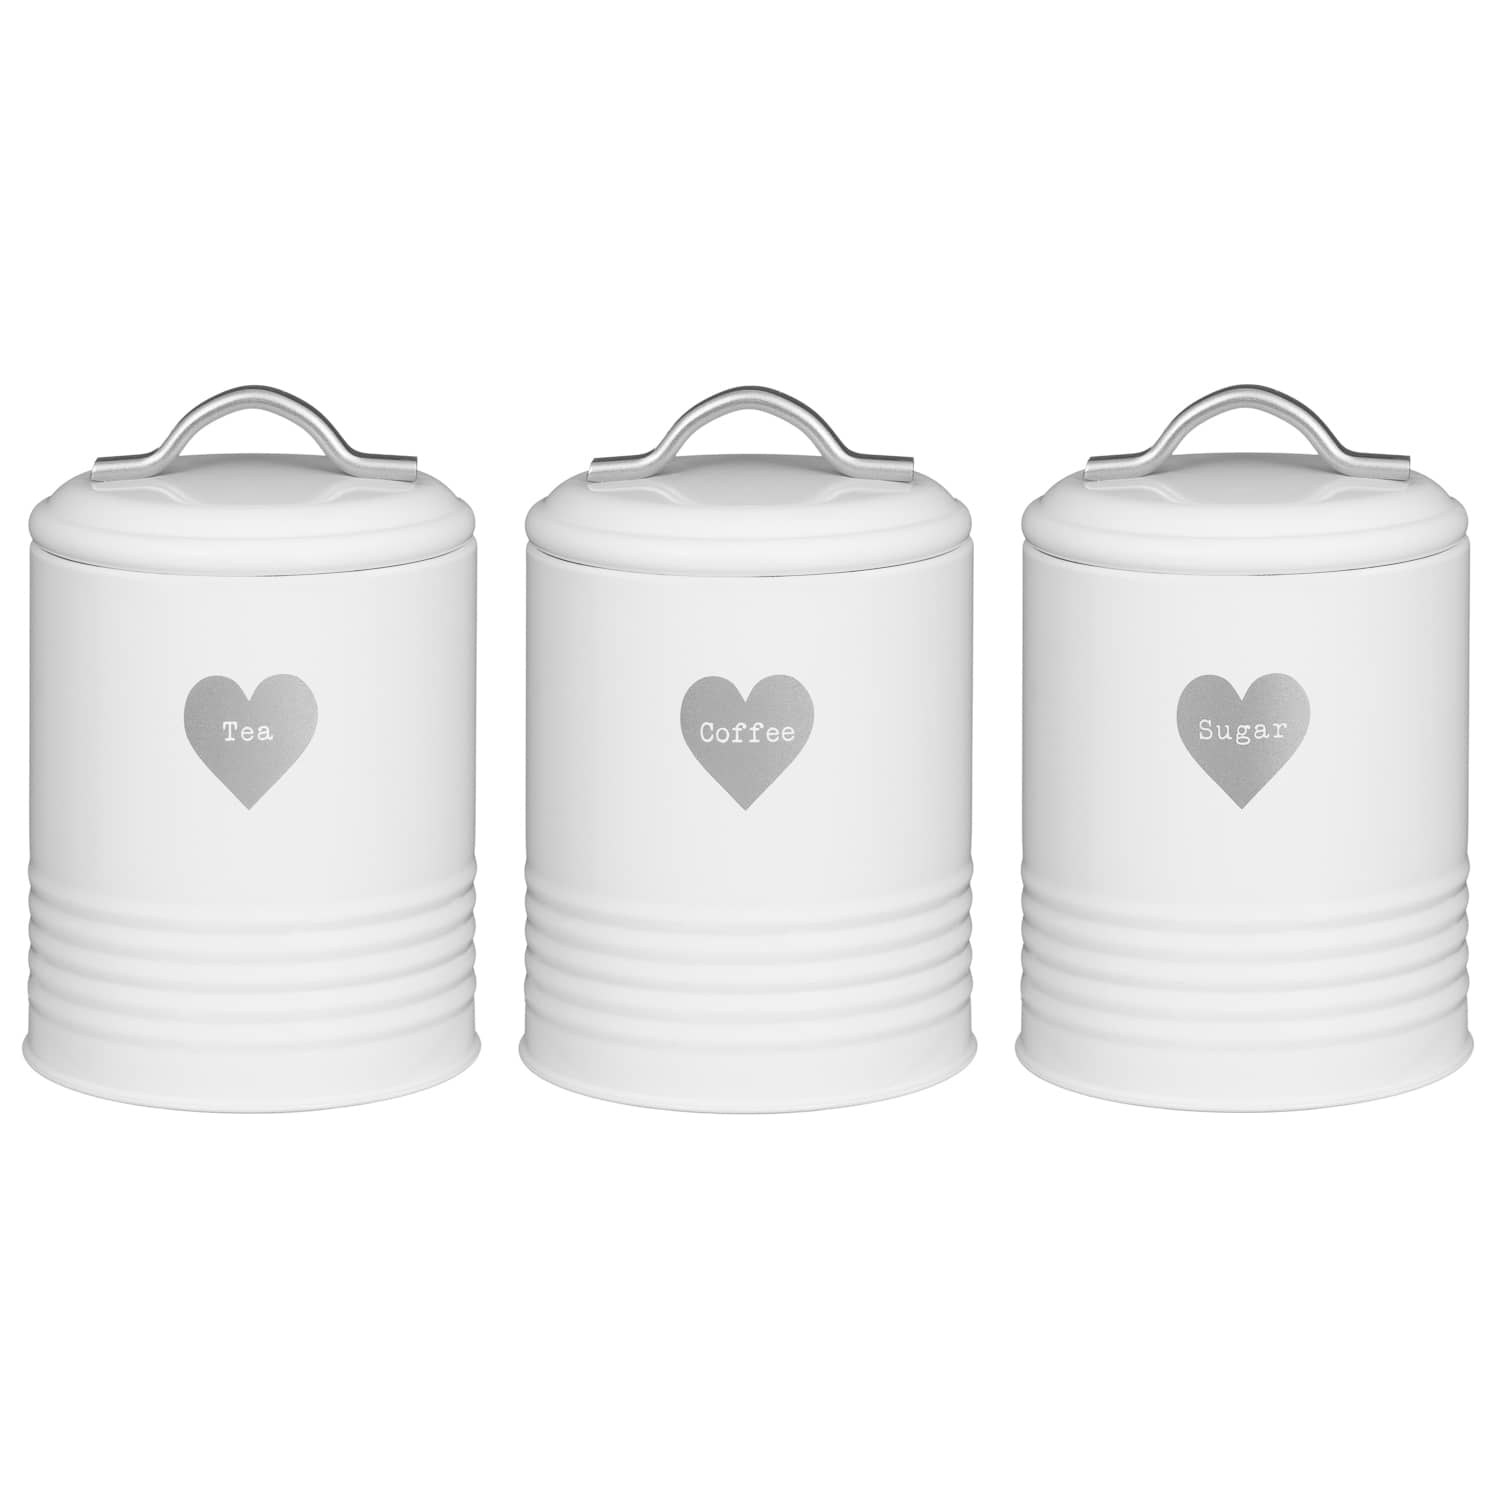 SET OF 3 EMBOSSED HEART TEA COFFEE SUGAR JARS WHITE KITCHEN STORAGE TIN CANISTER